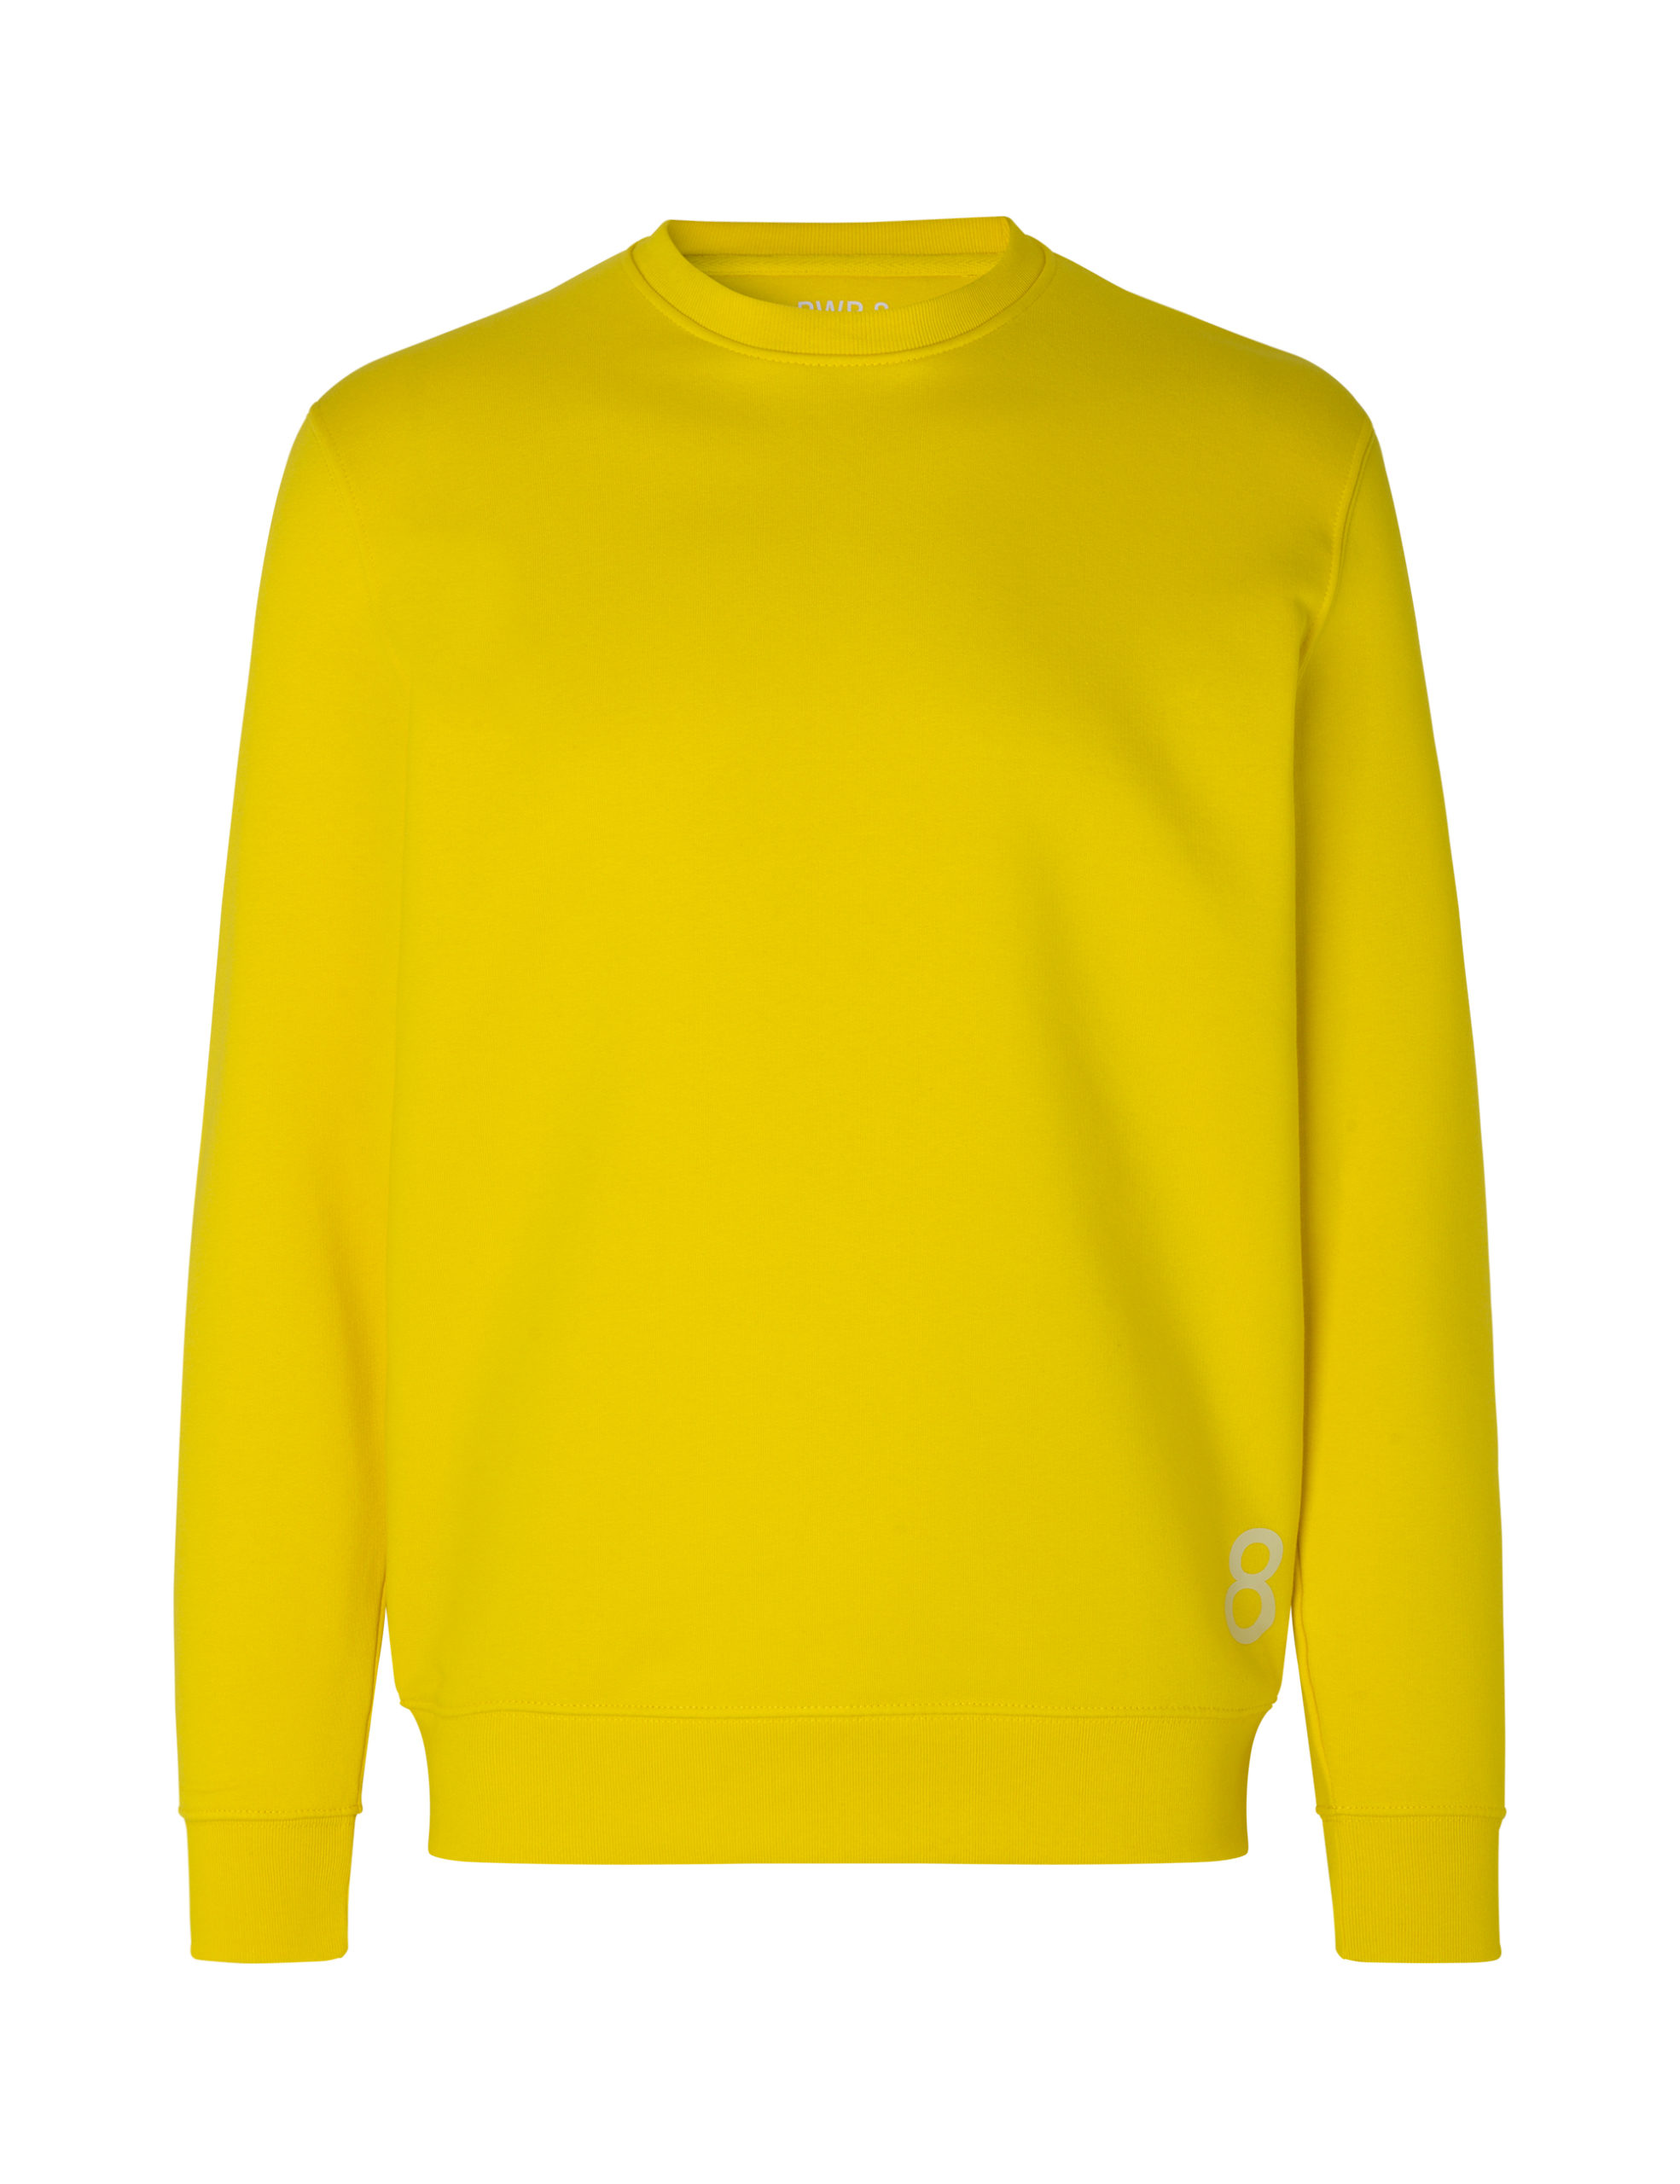 PWR_SweatShirt_Yellow 2